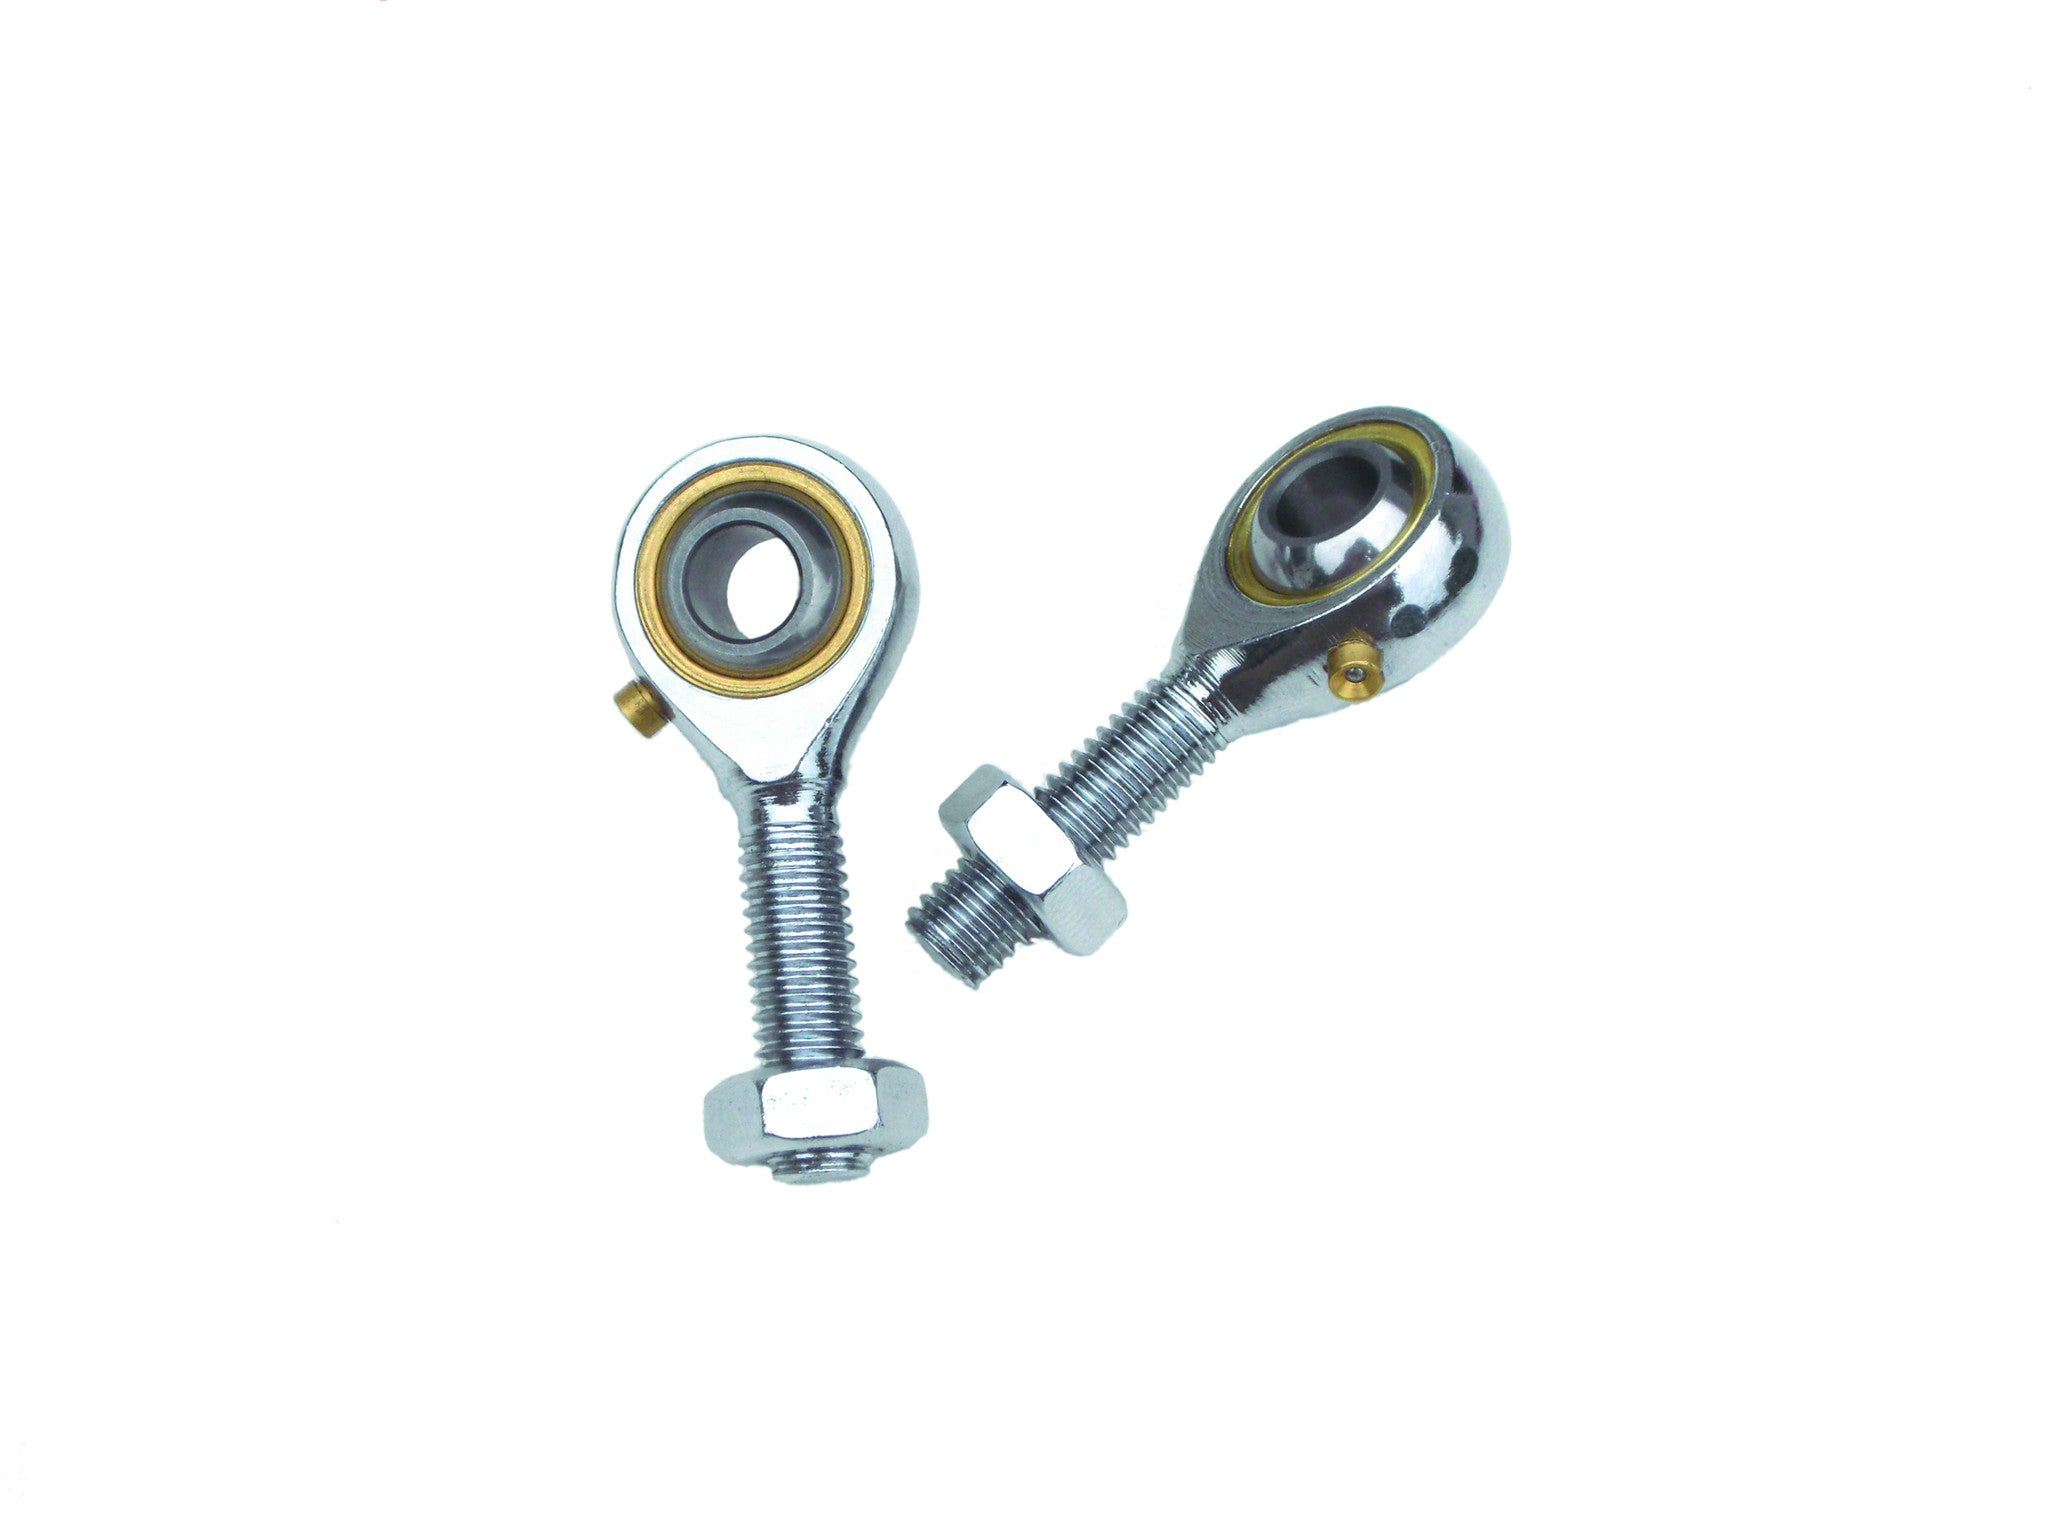 tie-rod-end-with-jam-nut-8mm-right-handed